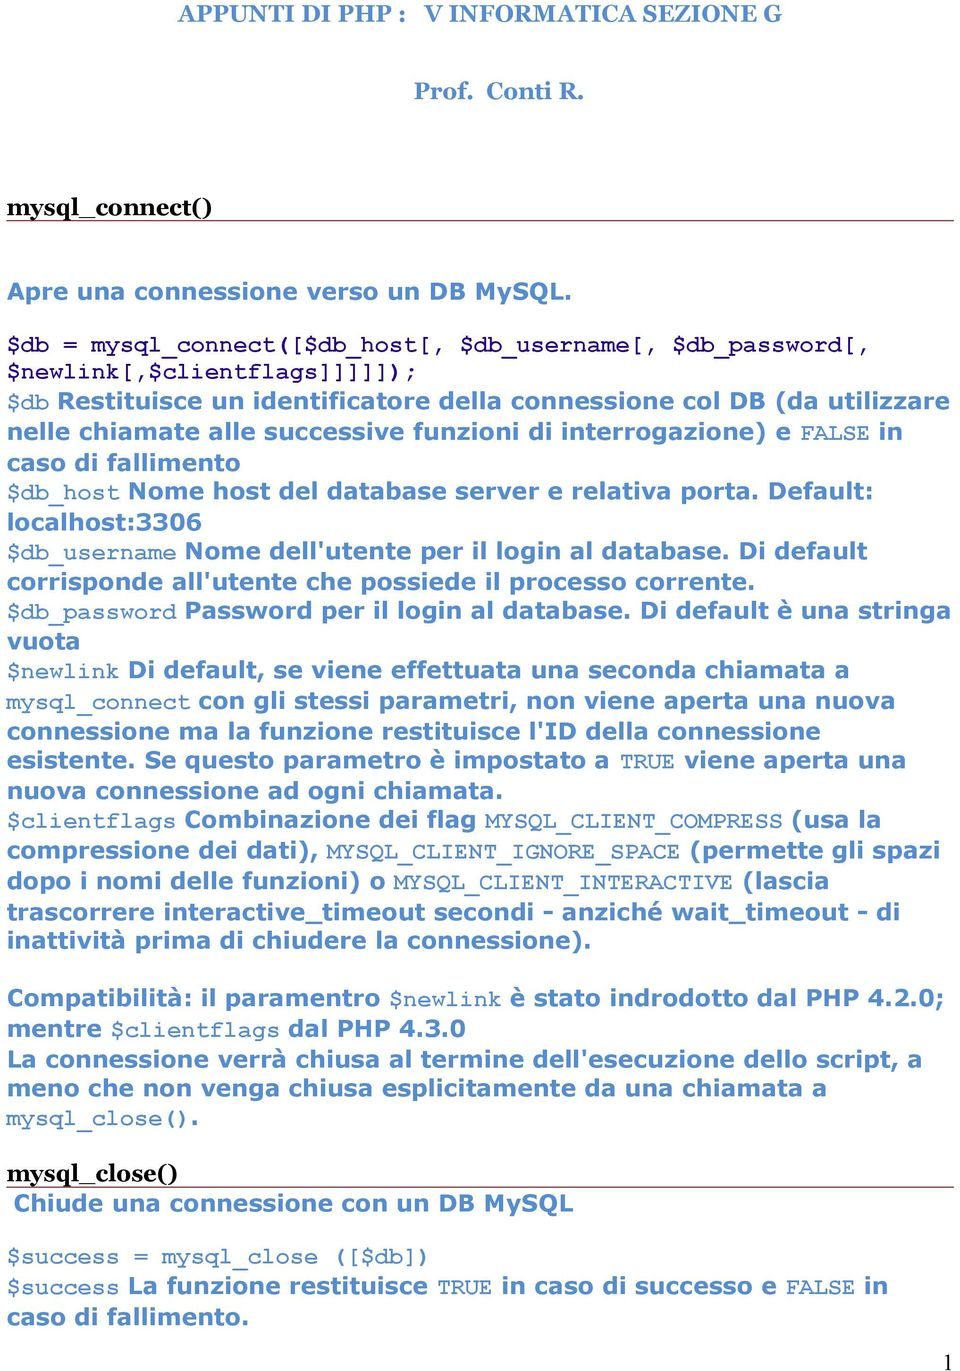 funzioni di interrogazione) e FALSE in caso di fallimento $db_host Nome host del database server e relativa porta. Default: localhost:3306 $db_username Nome dell'utente per il login al database.